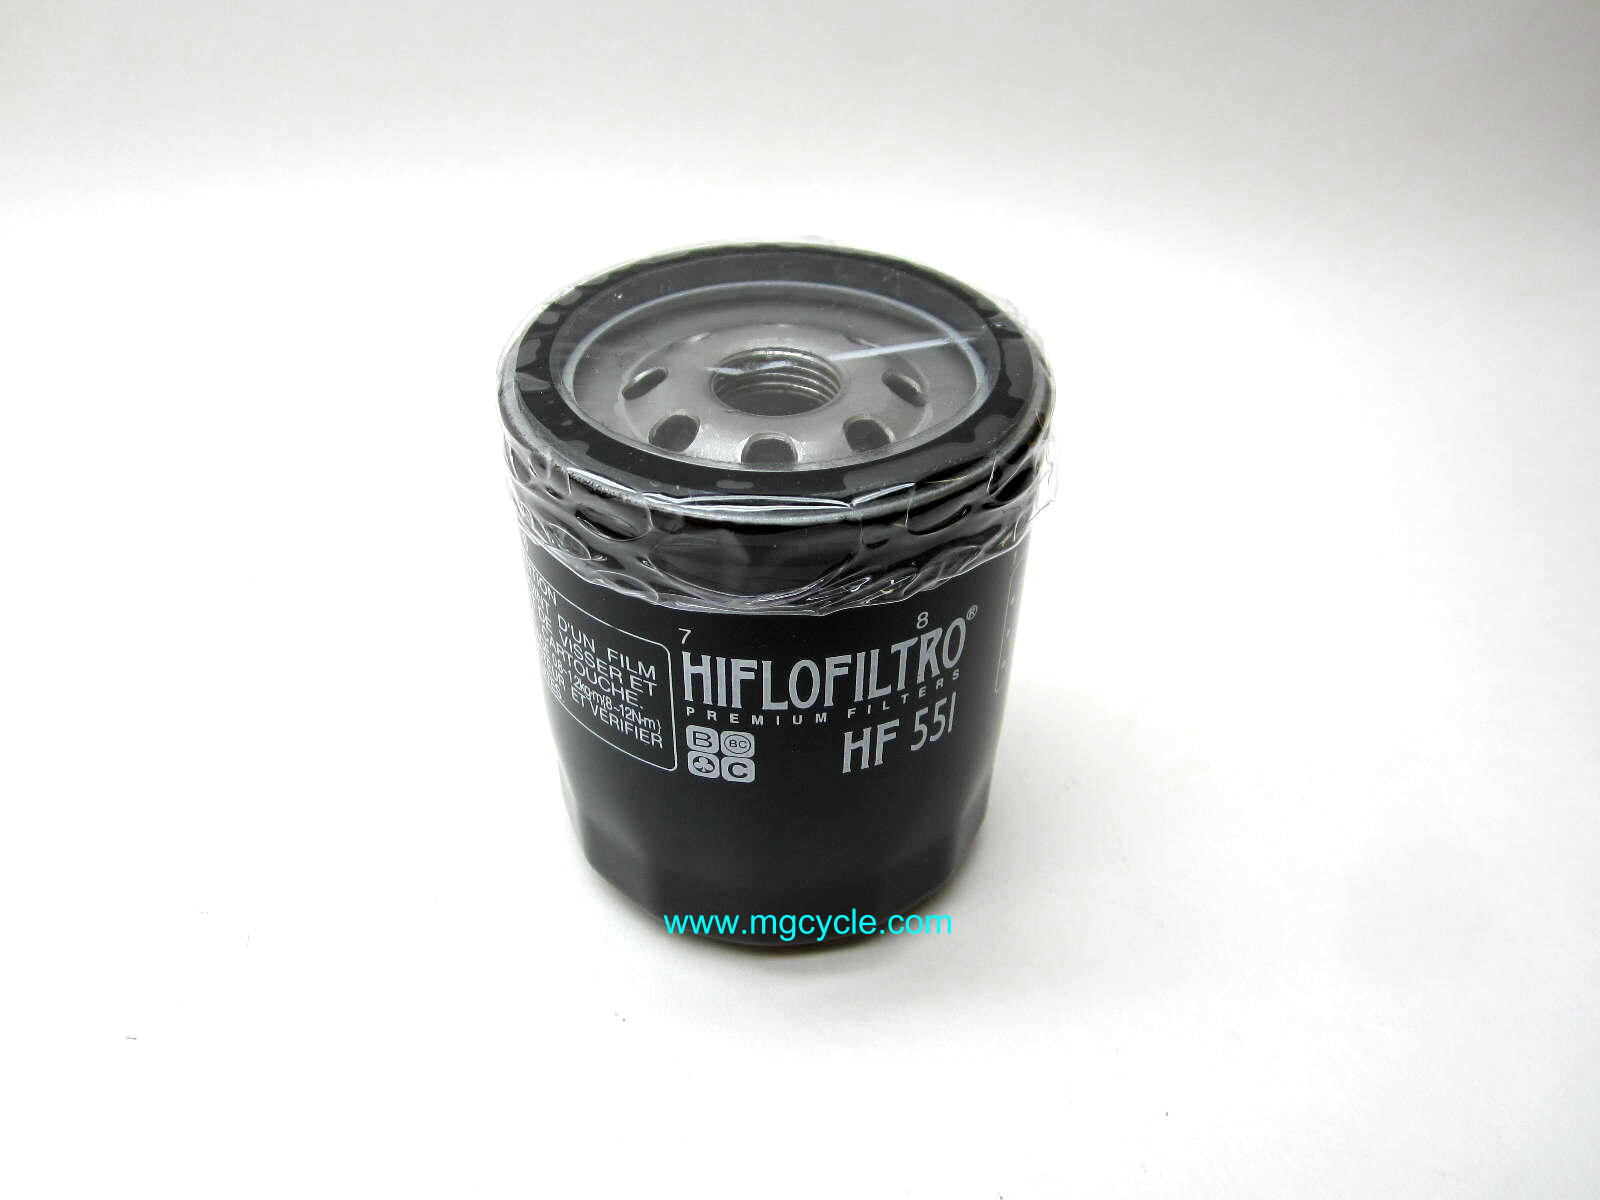 HiFloFiltro oil filter, all 1100cc and 1200cc models Centauro